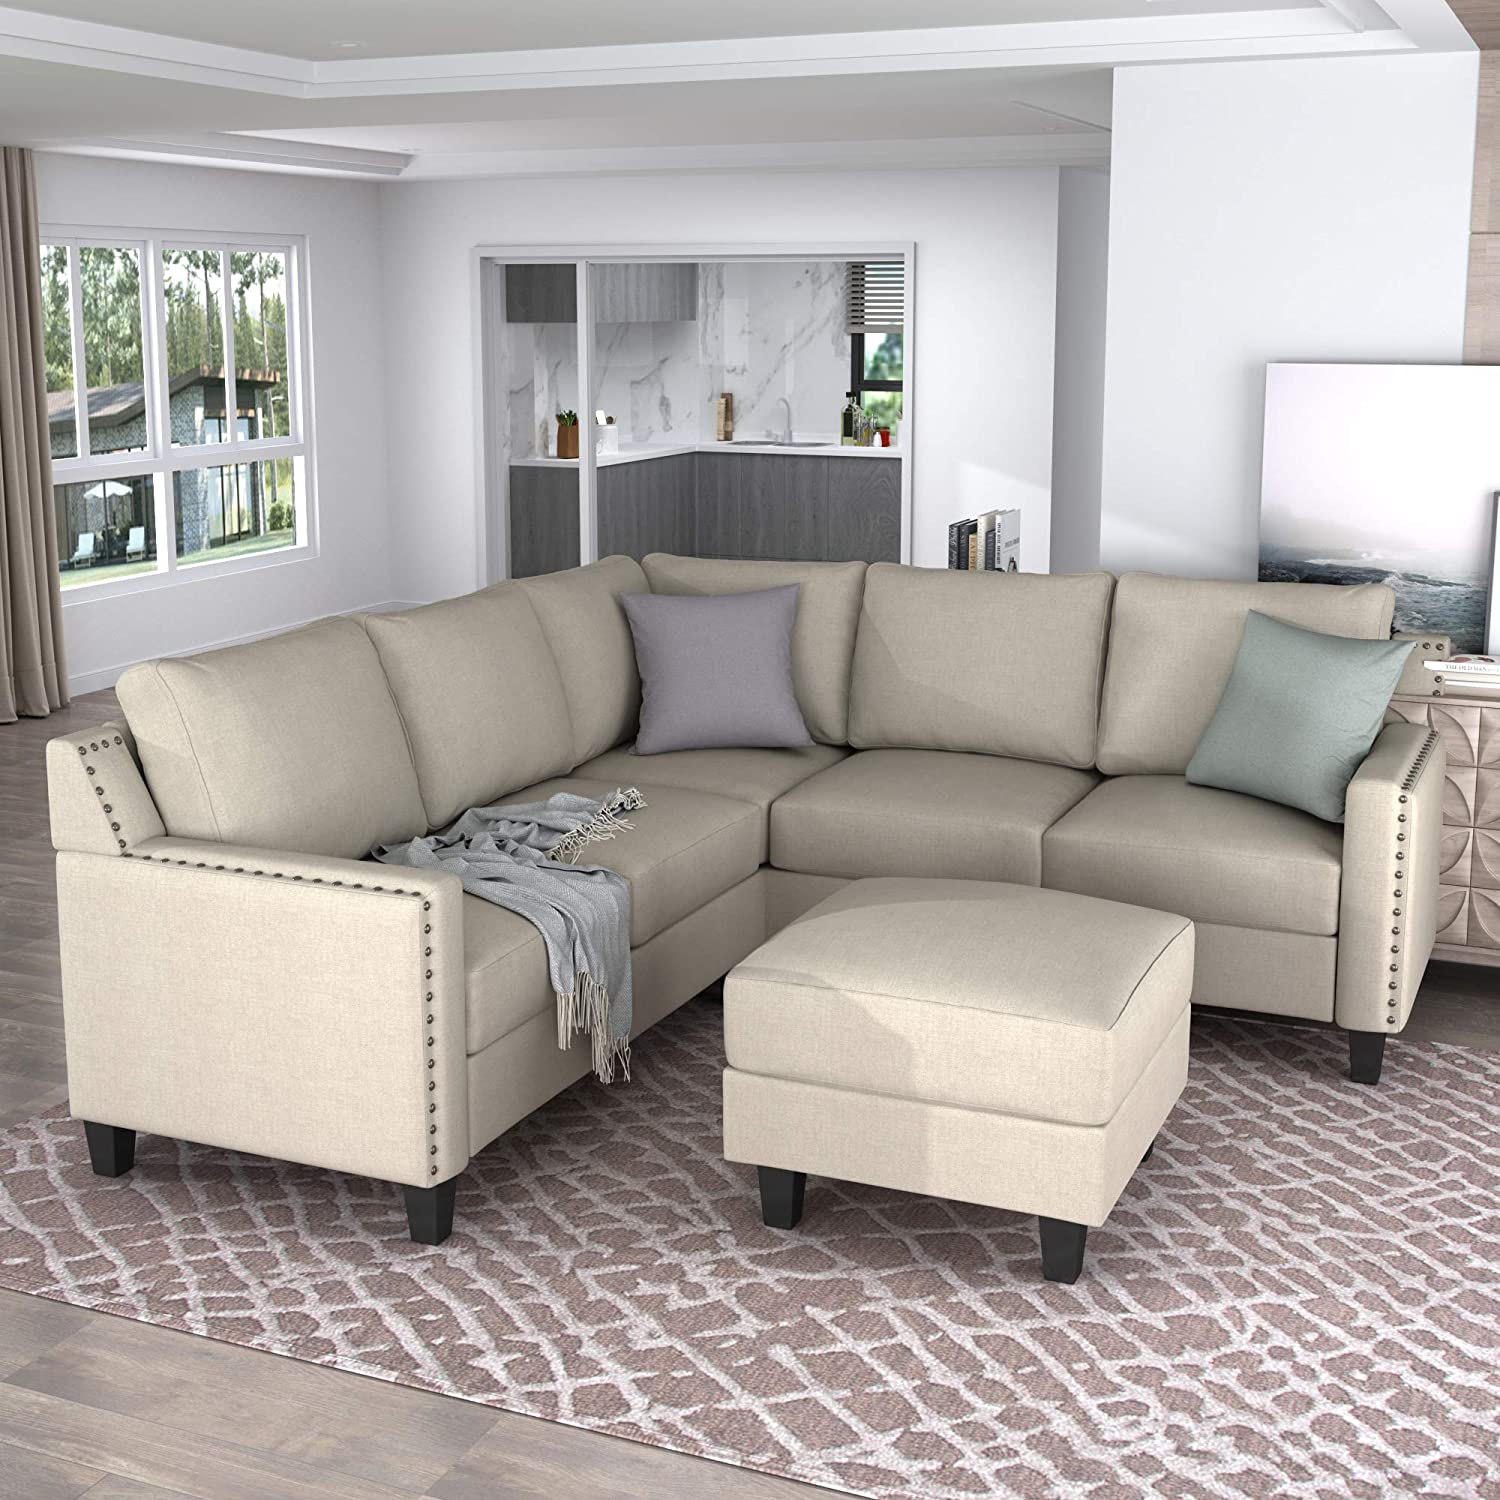 GAOPAN Sectional Furniture Ottoman. Home L-Shaped Couch, Rivet Modern Upholstered Sofa Set for Living Room, Beige